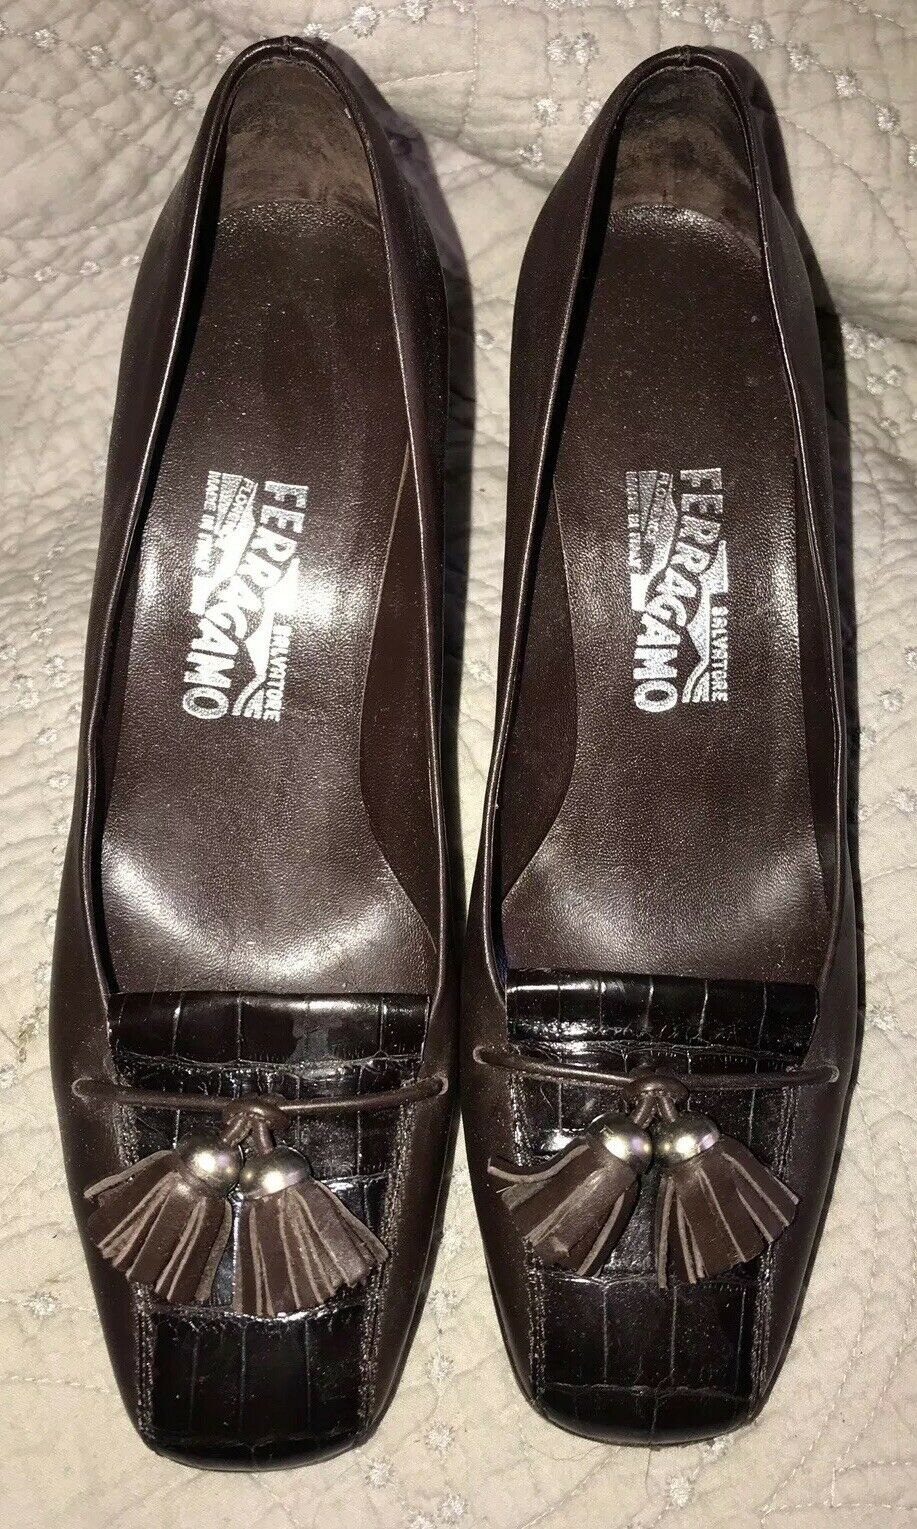 Salvatore Ferragamo Tassel Loafer Brown  Leather Chunky Heels Pumps 9 B EUC